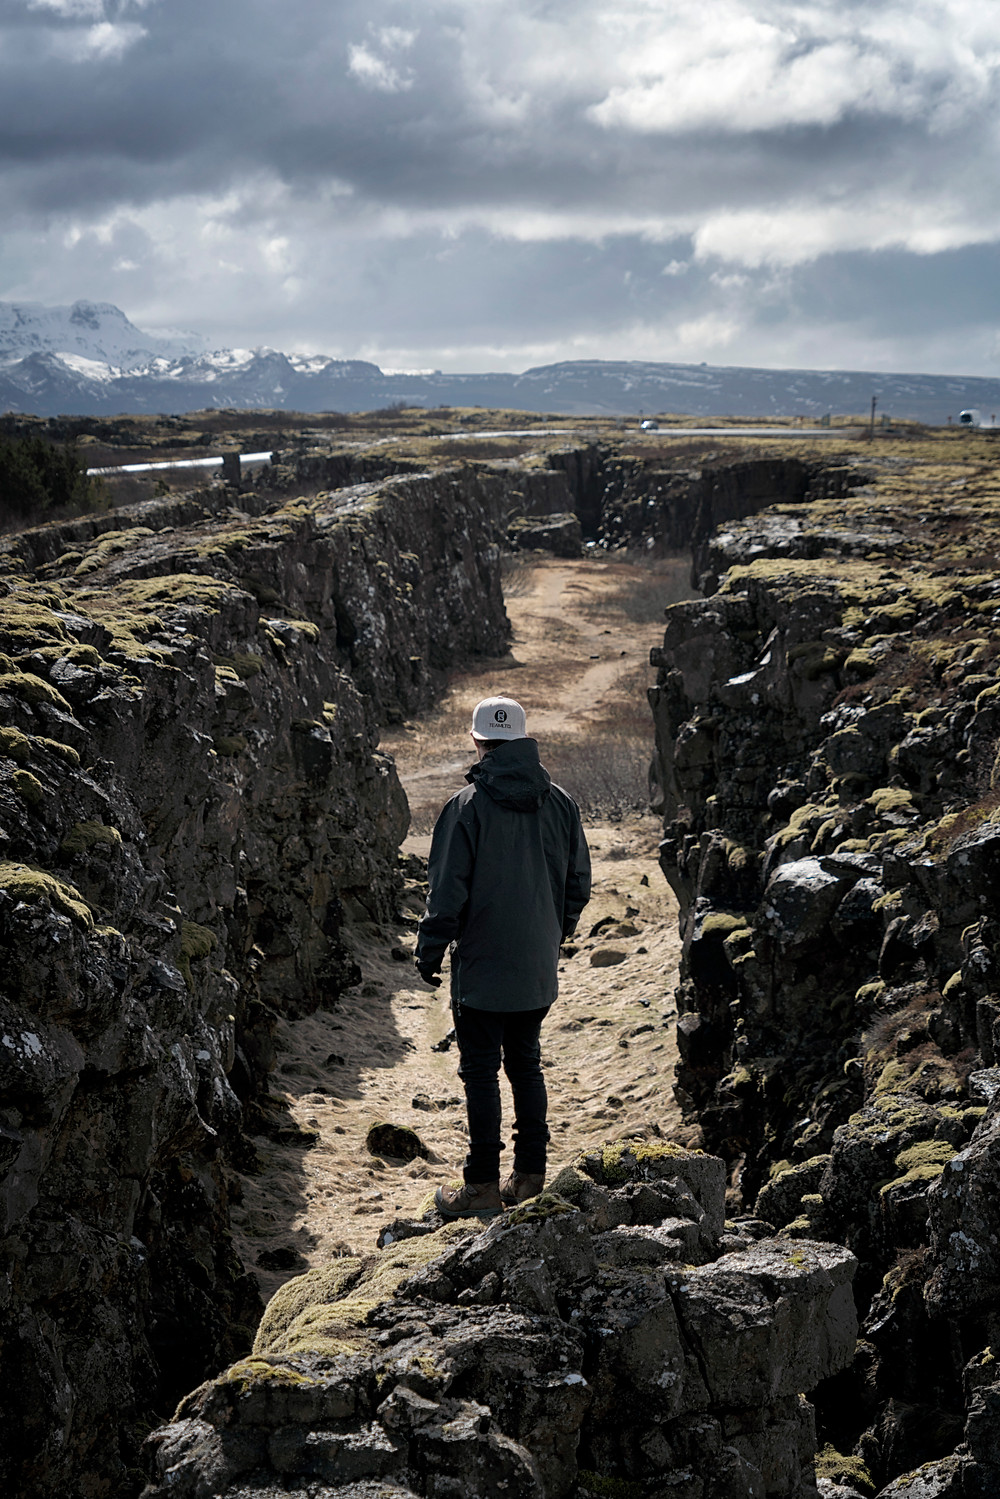 Insane to think these are two separate tectonic plates literally separating before your eyes